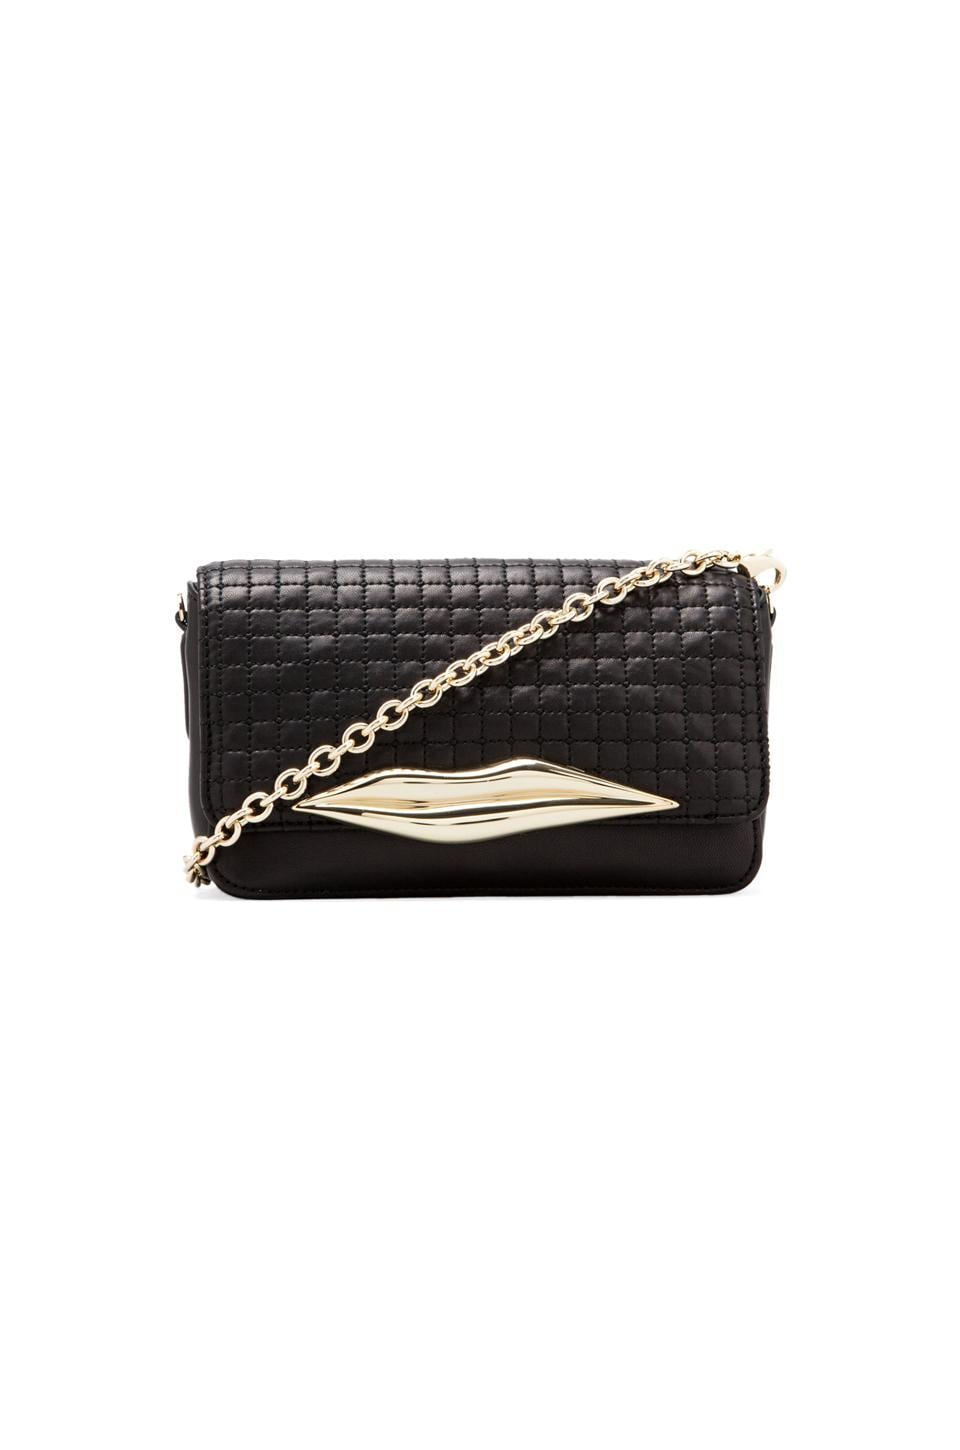 Diane von Furstenberg Flirty Mini Crossbody in Black